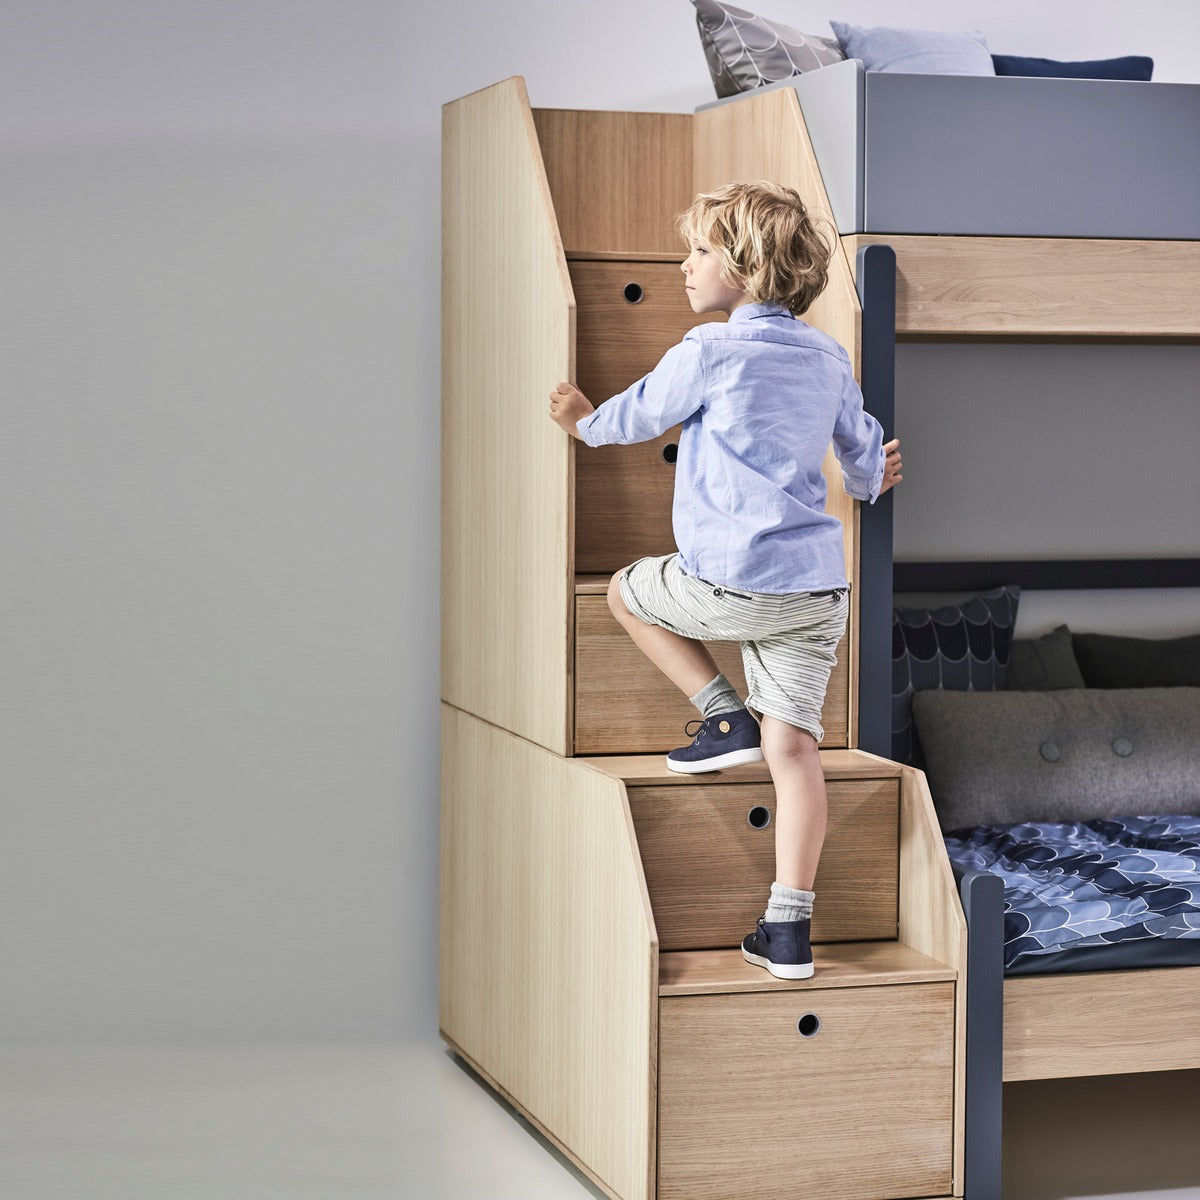 flexa etagenbett popsicle mit treppe blau ab 4 jahre t v gepr ft kidswoodlove. Black Bedroom Furniture Sets. Home Design Ideas